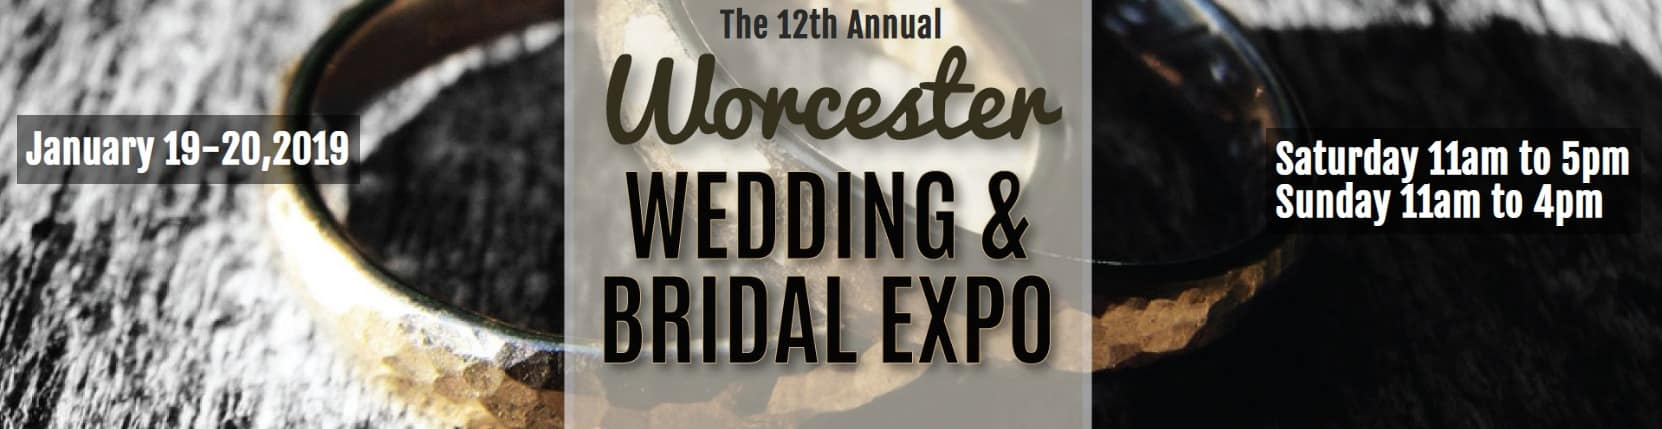 Worcester MASS Bridal Expo January 19th & 20th 2019. Produced by Jenks Productions